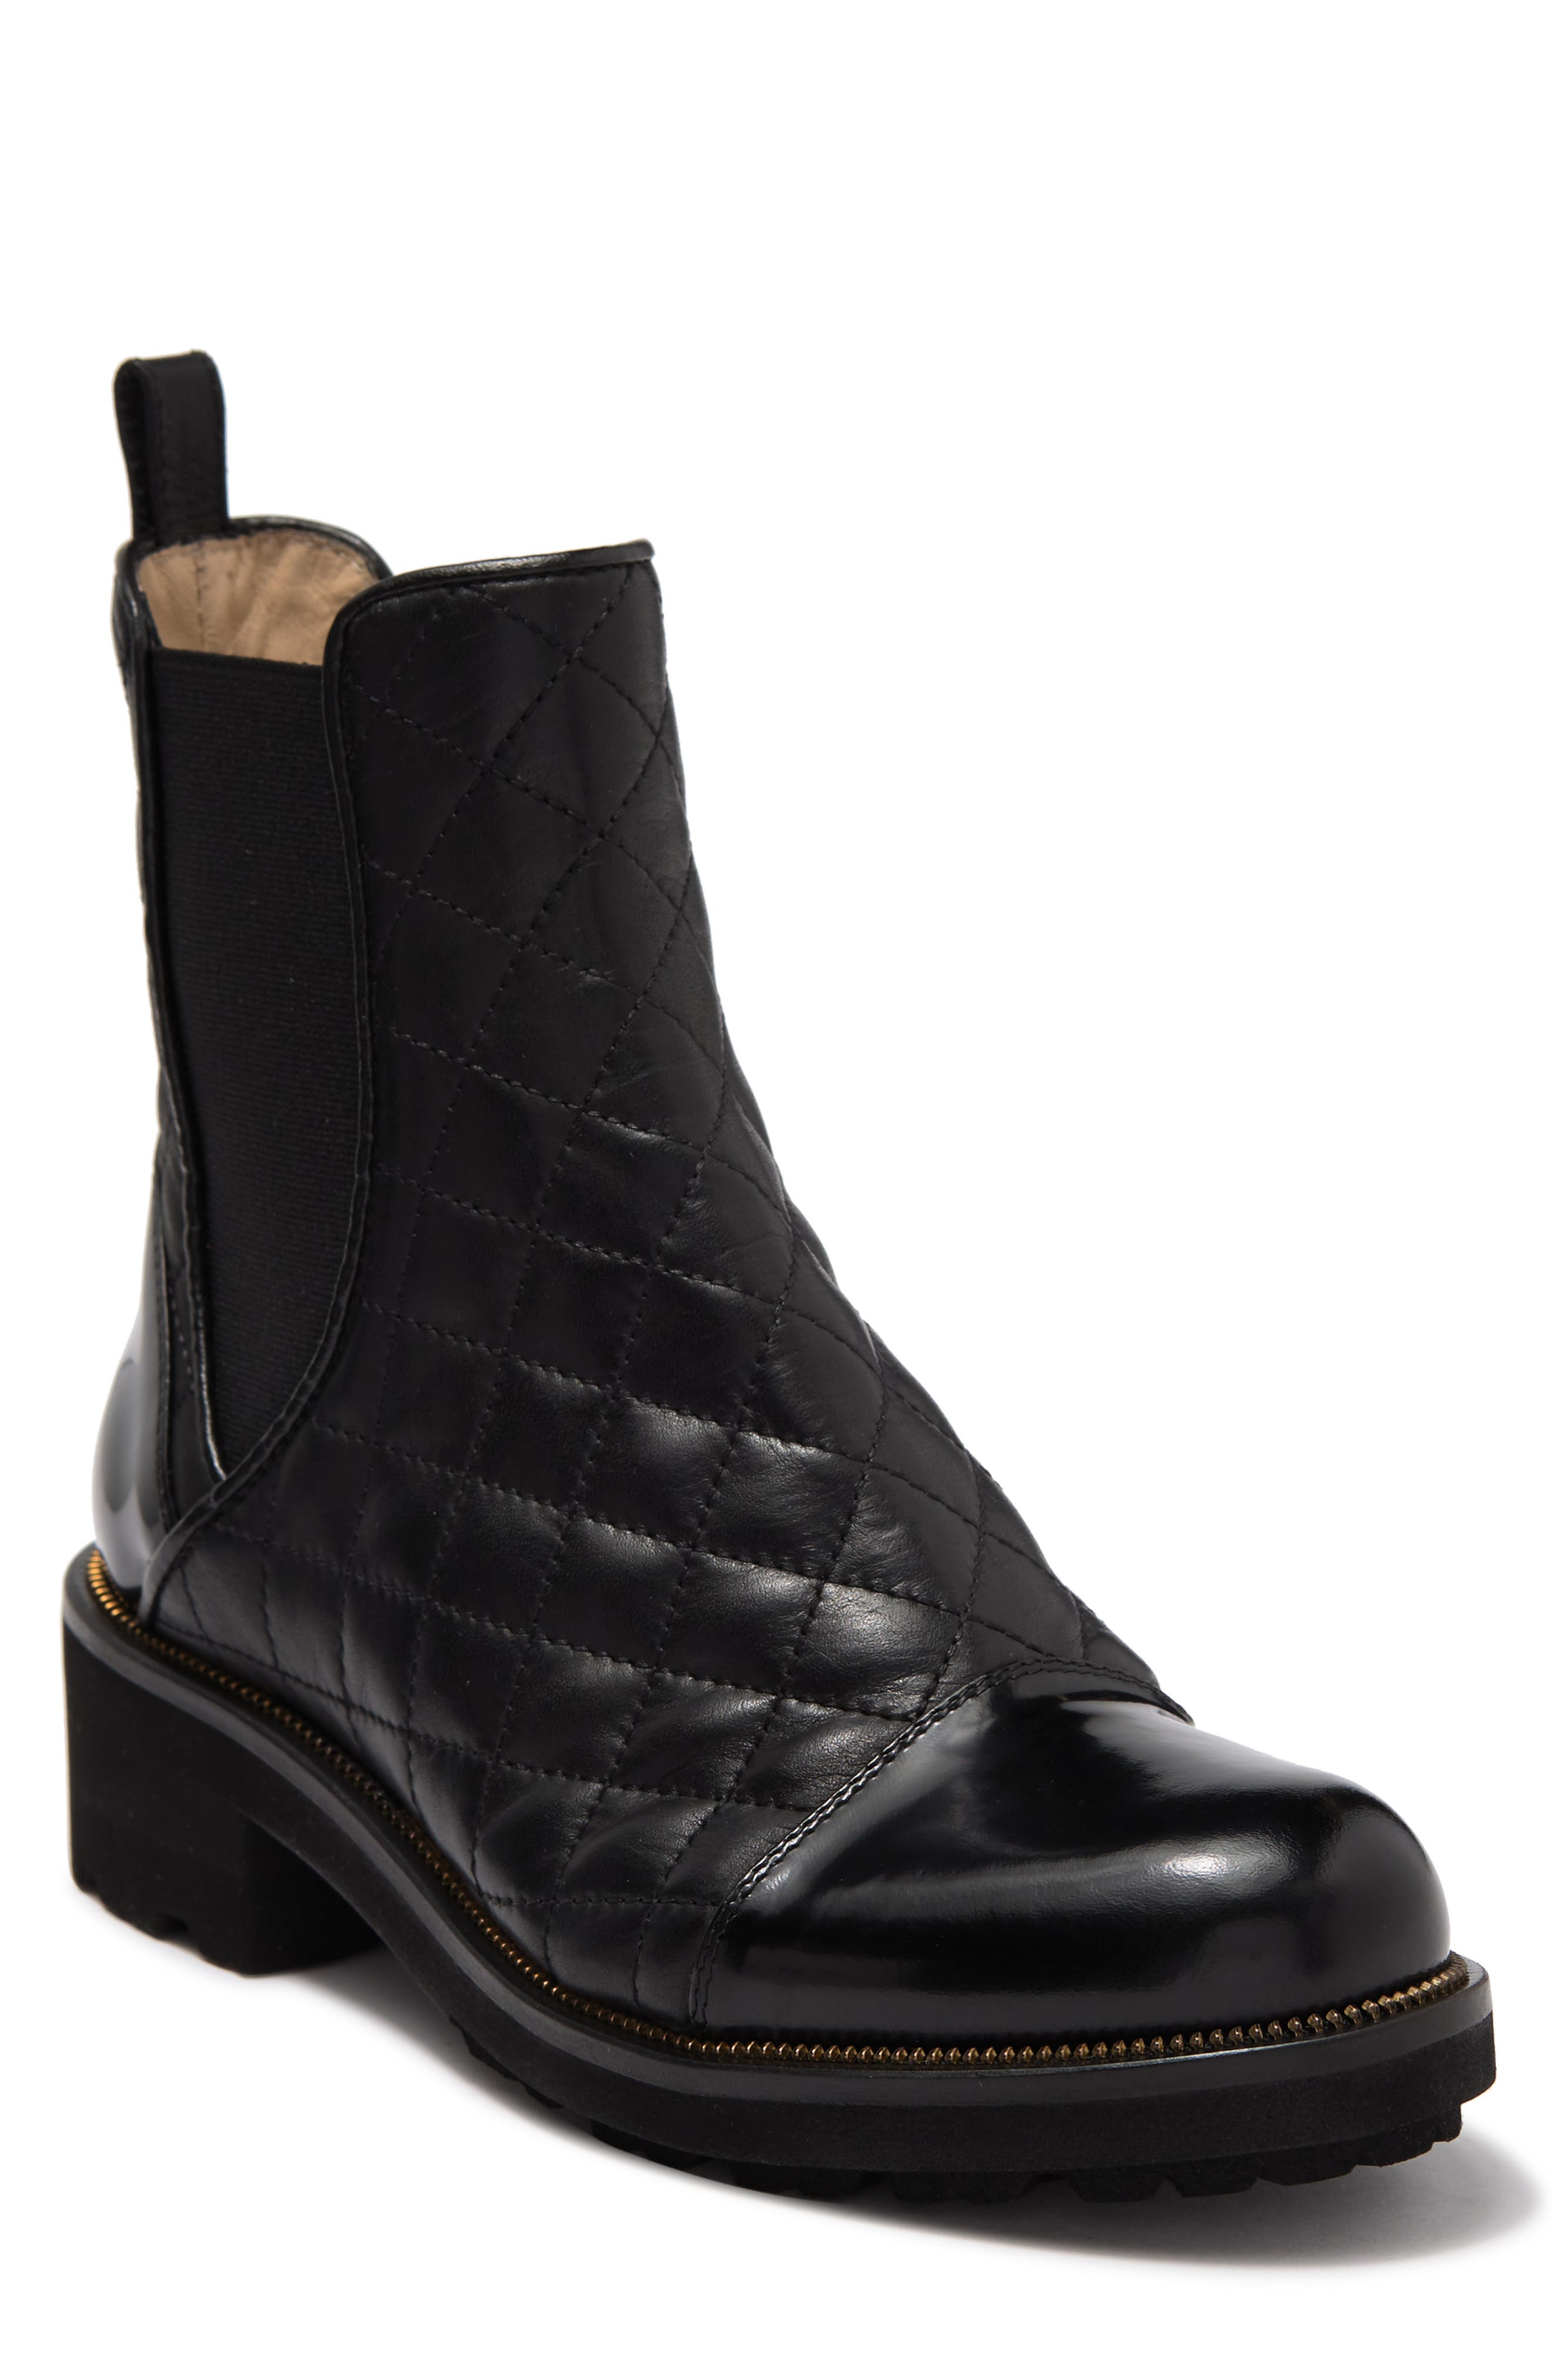 Targen Diamond Quilted Pull-on Leather Boot | Nordstromrack